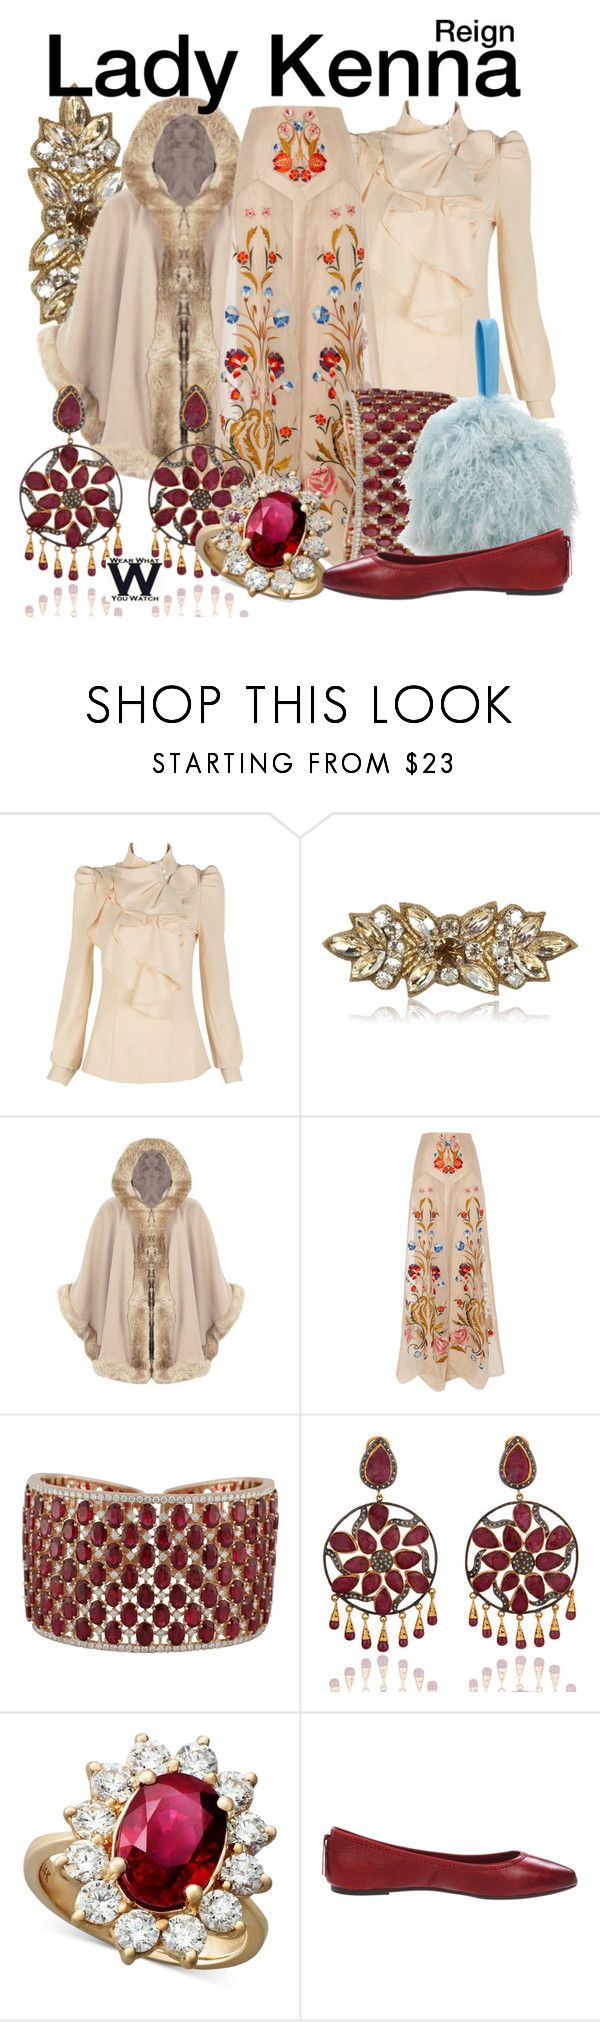 """""""Reign"""" by wearwhatyouwatch ❤ liked on Polyvore featuring Deepa Gurnani, Temperley London, Charlotte Simone, R.H. Macy's & Co., Frye, television and wearwhatyouwatch"""